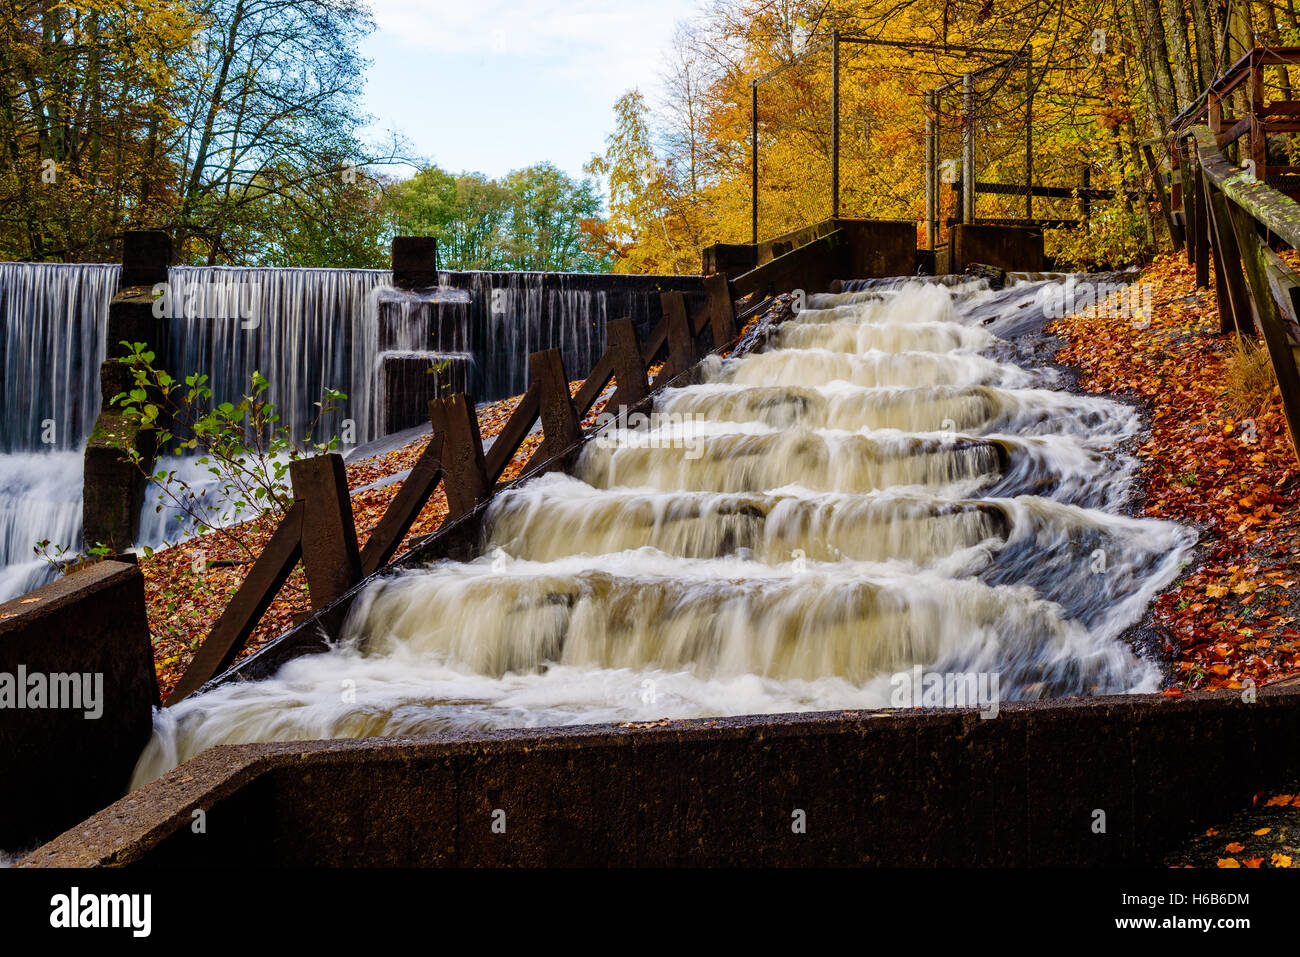 Background image overflow - Fish Ladder With Rapids In Fall Woodland Landscape Overflow Of Water Create Waterfall In Background The River Braknean In Sout